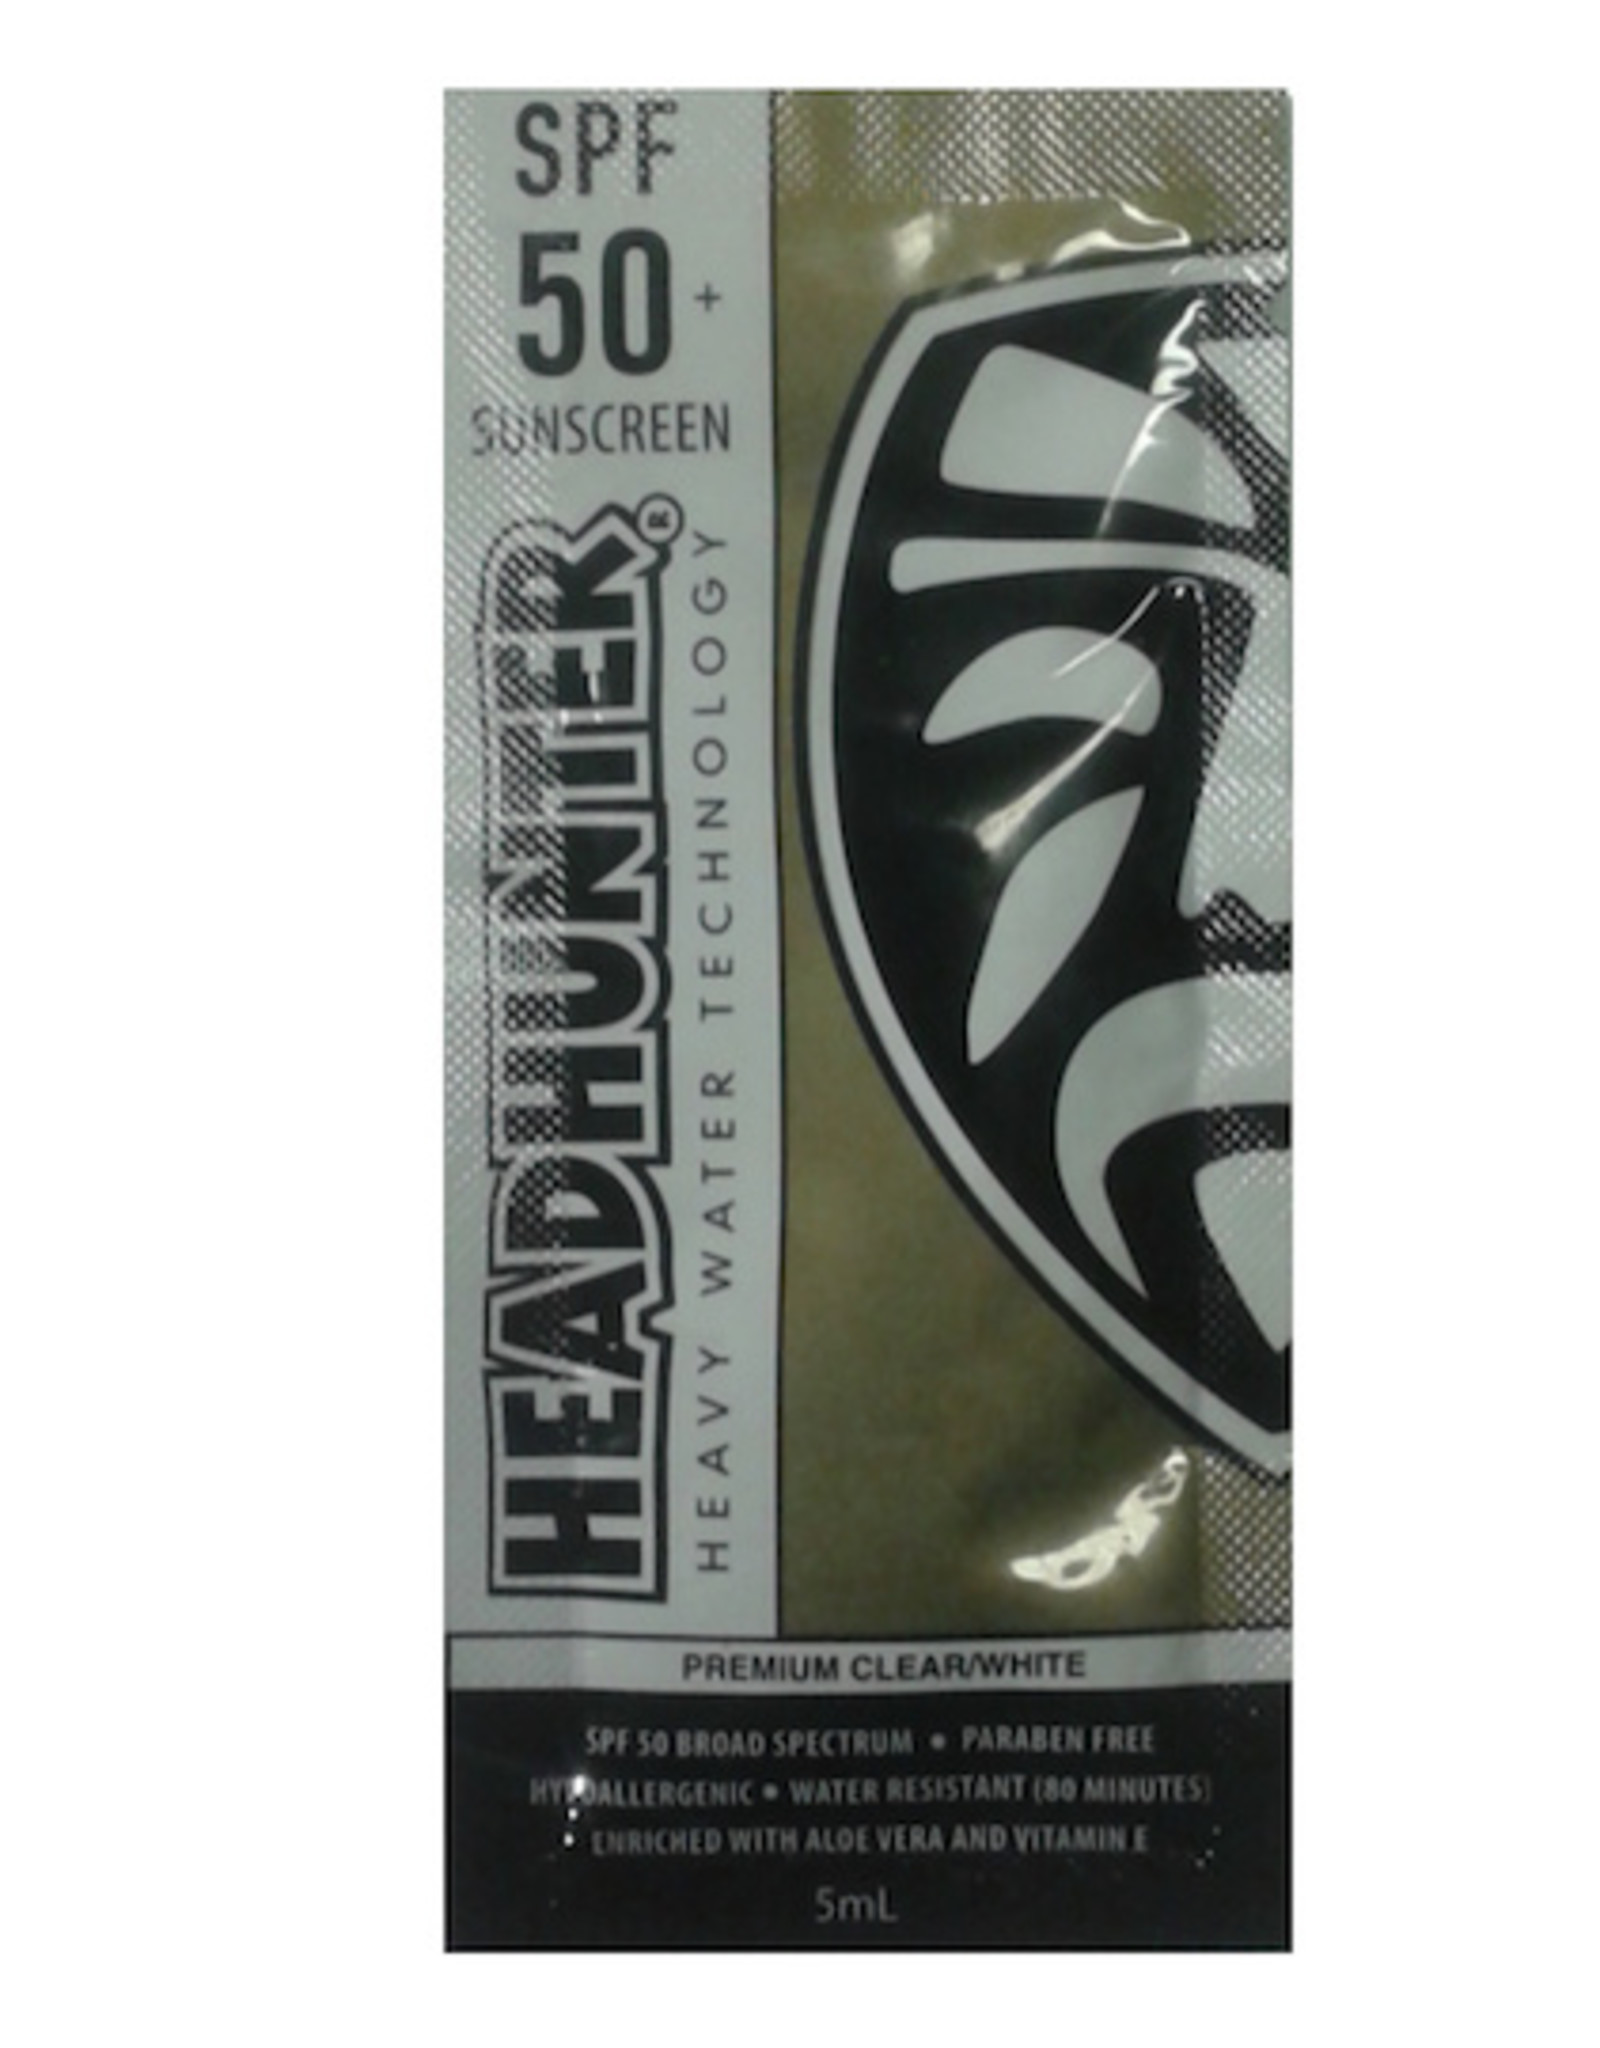 FCS Headhunter - Sunscreen Clear SPF 50 Paraben Free 5mL En gangs poser